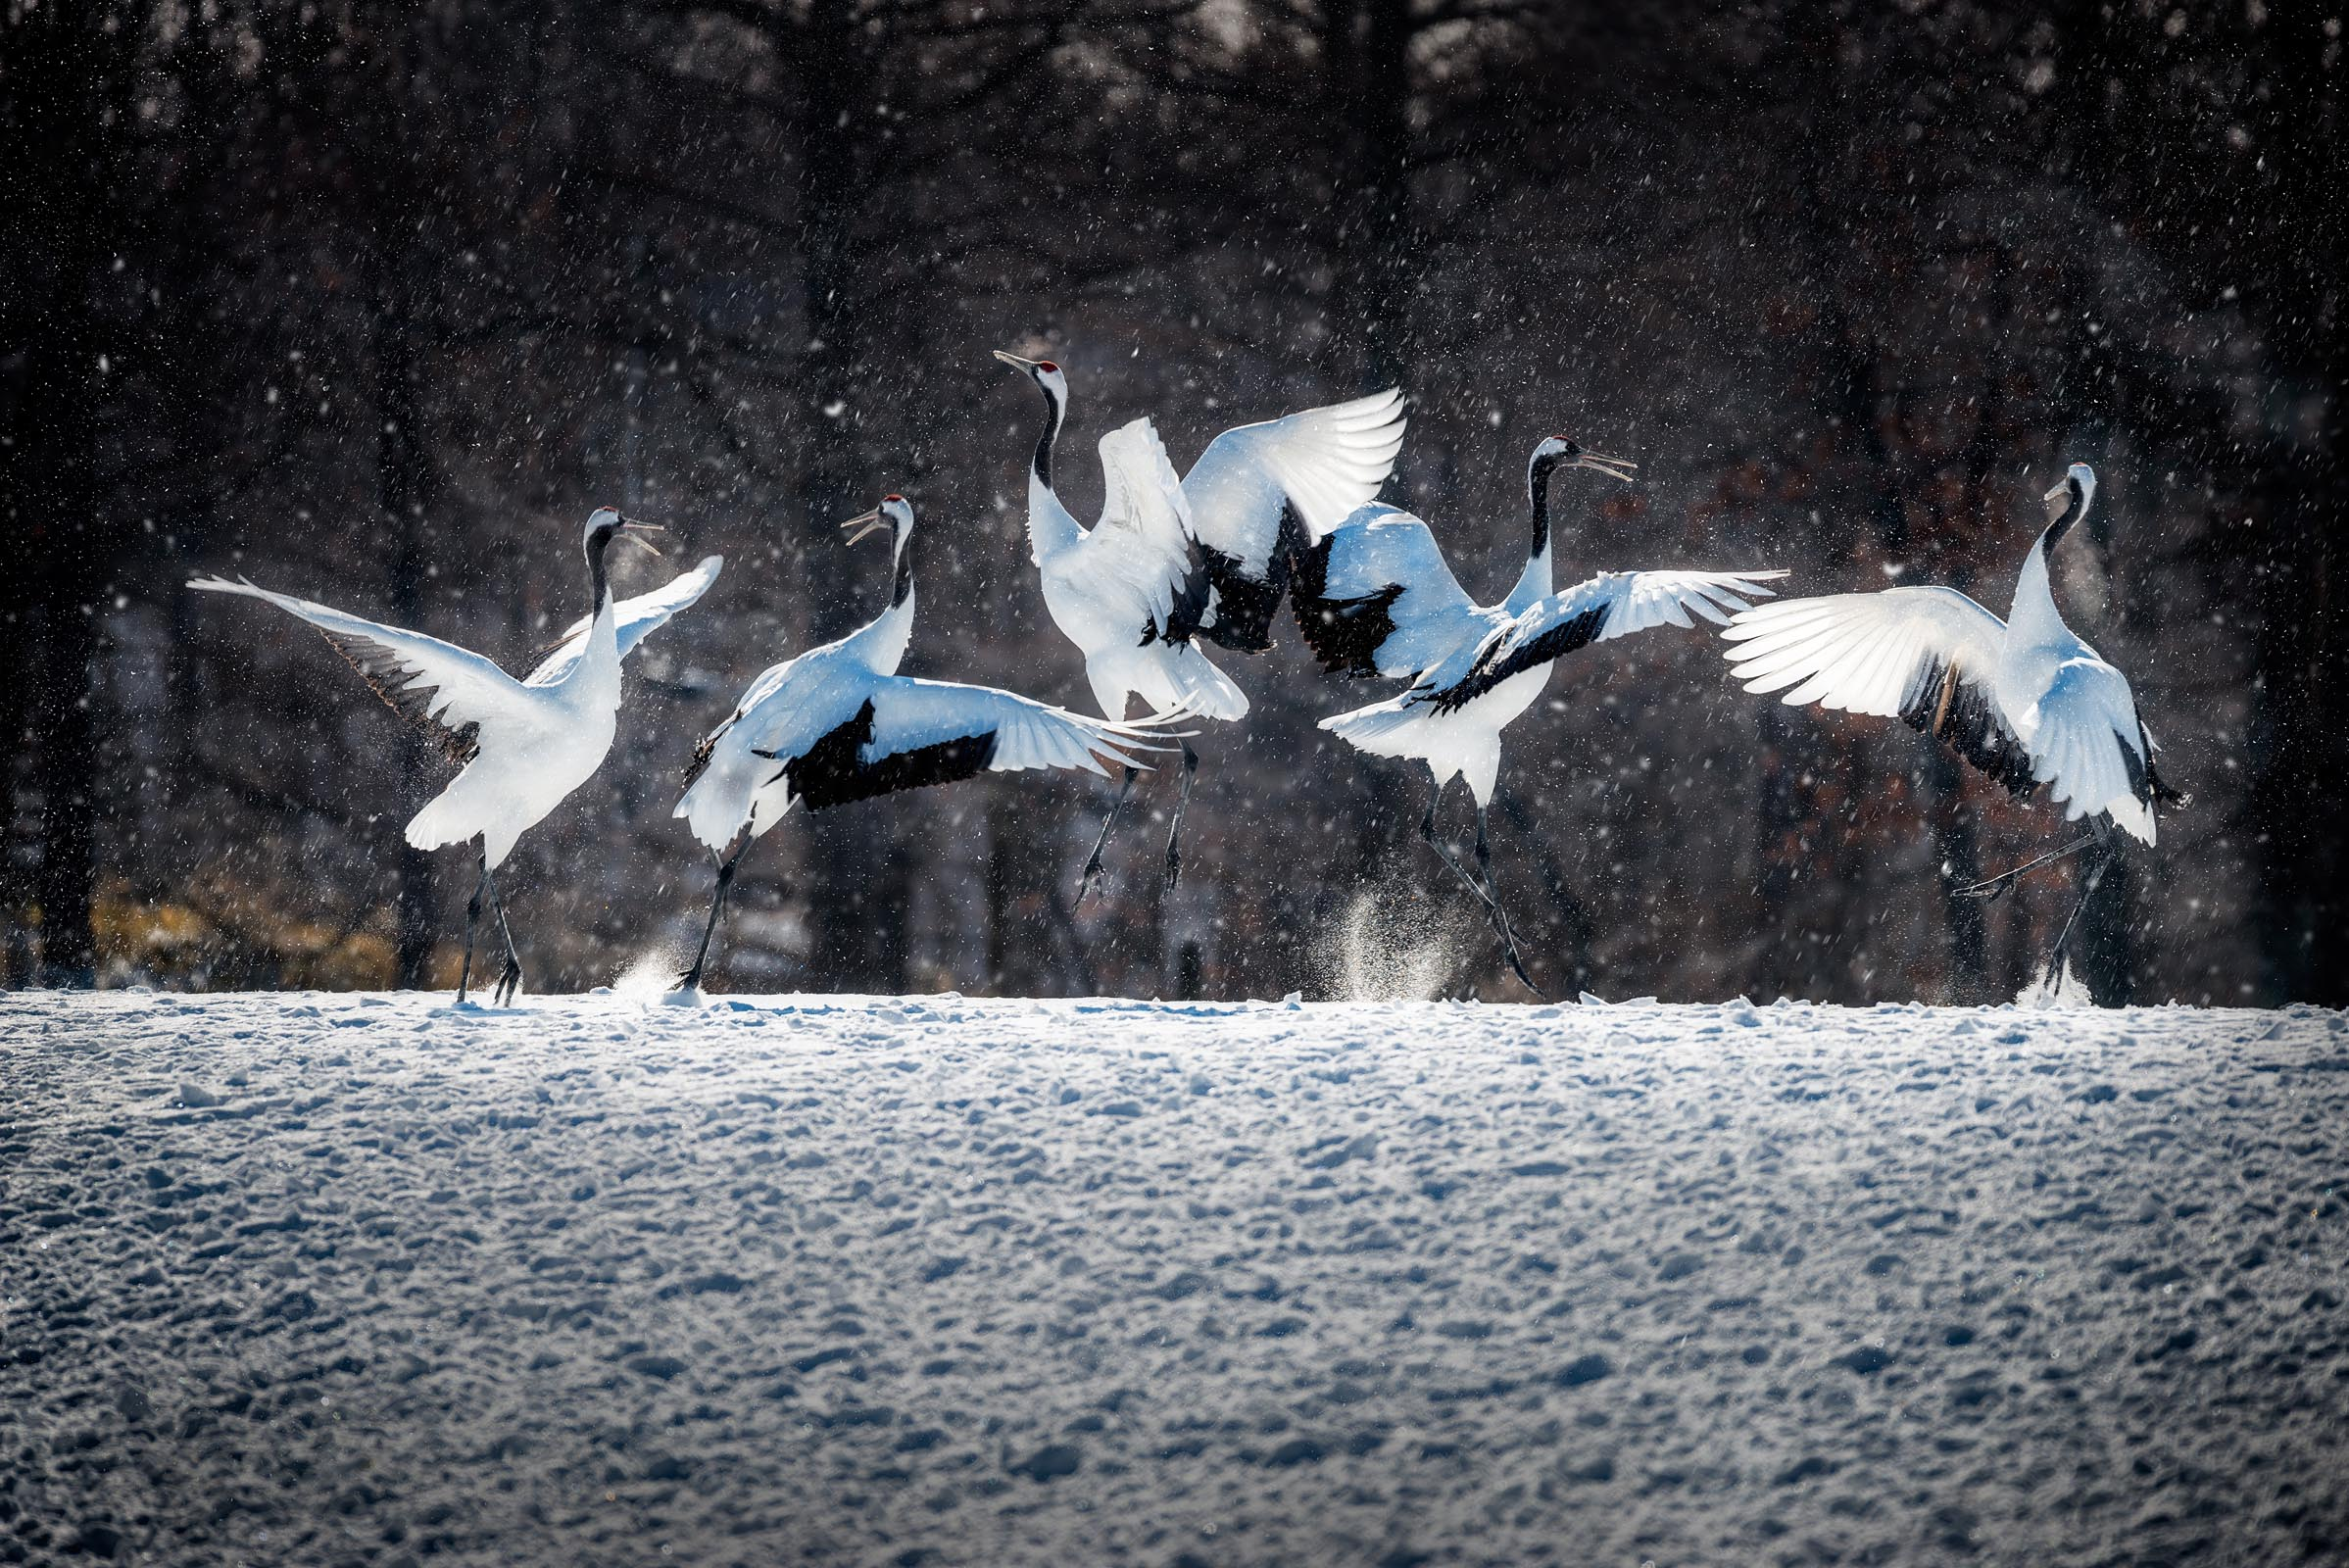 Photograph of Red Crowned Crane in Hokkaido, Japan by Brent Goldman Photography